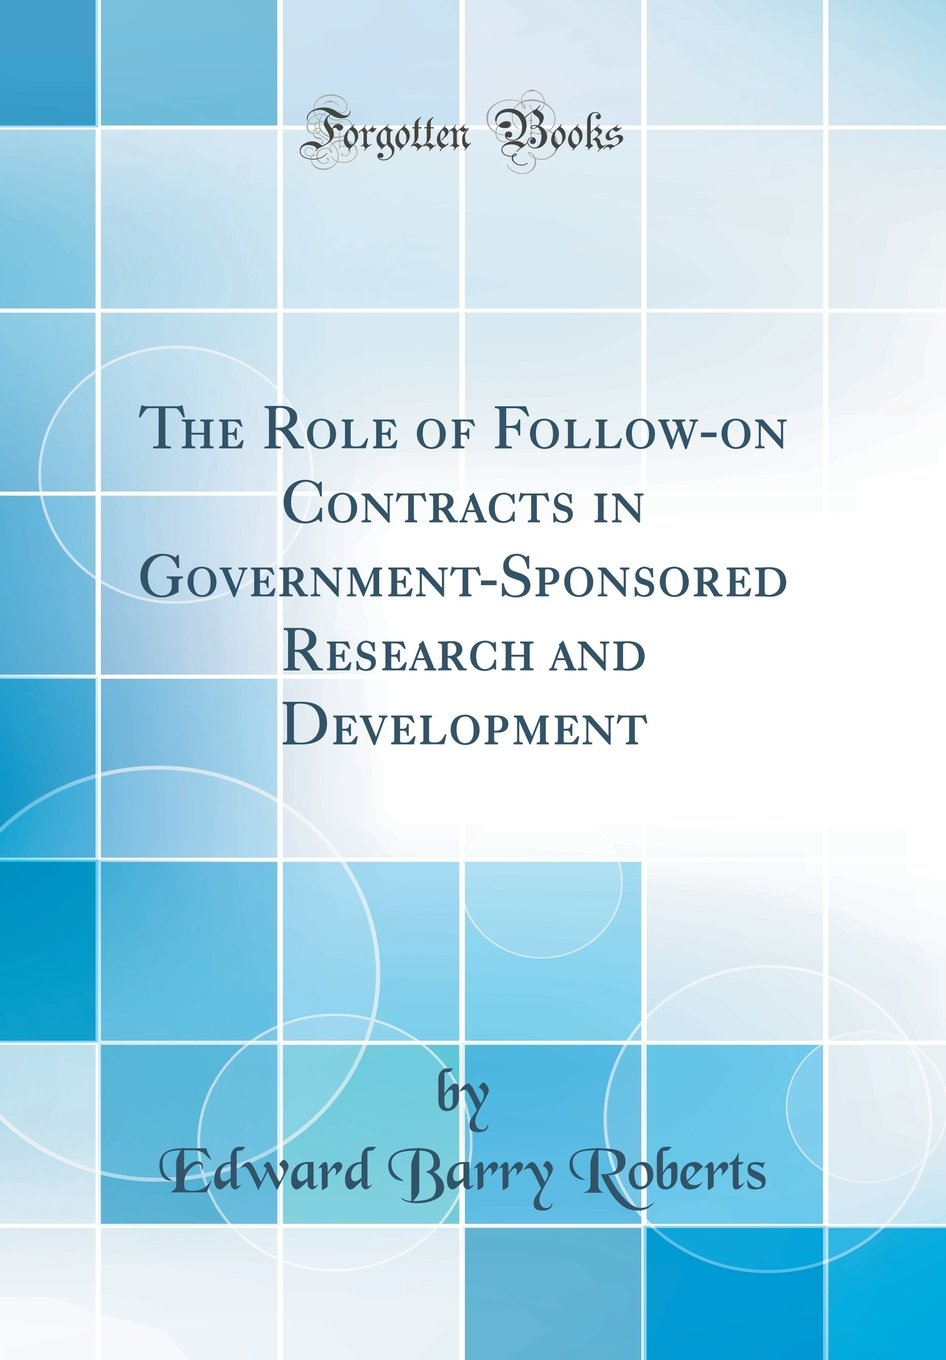 Download The Role of Follow-on Contracts in Government-Sponsored Research and Development (Classic Reprint) ebook